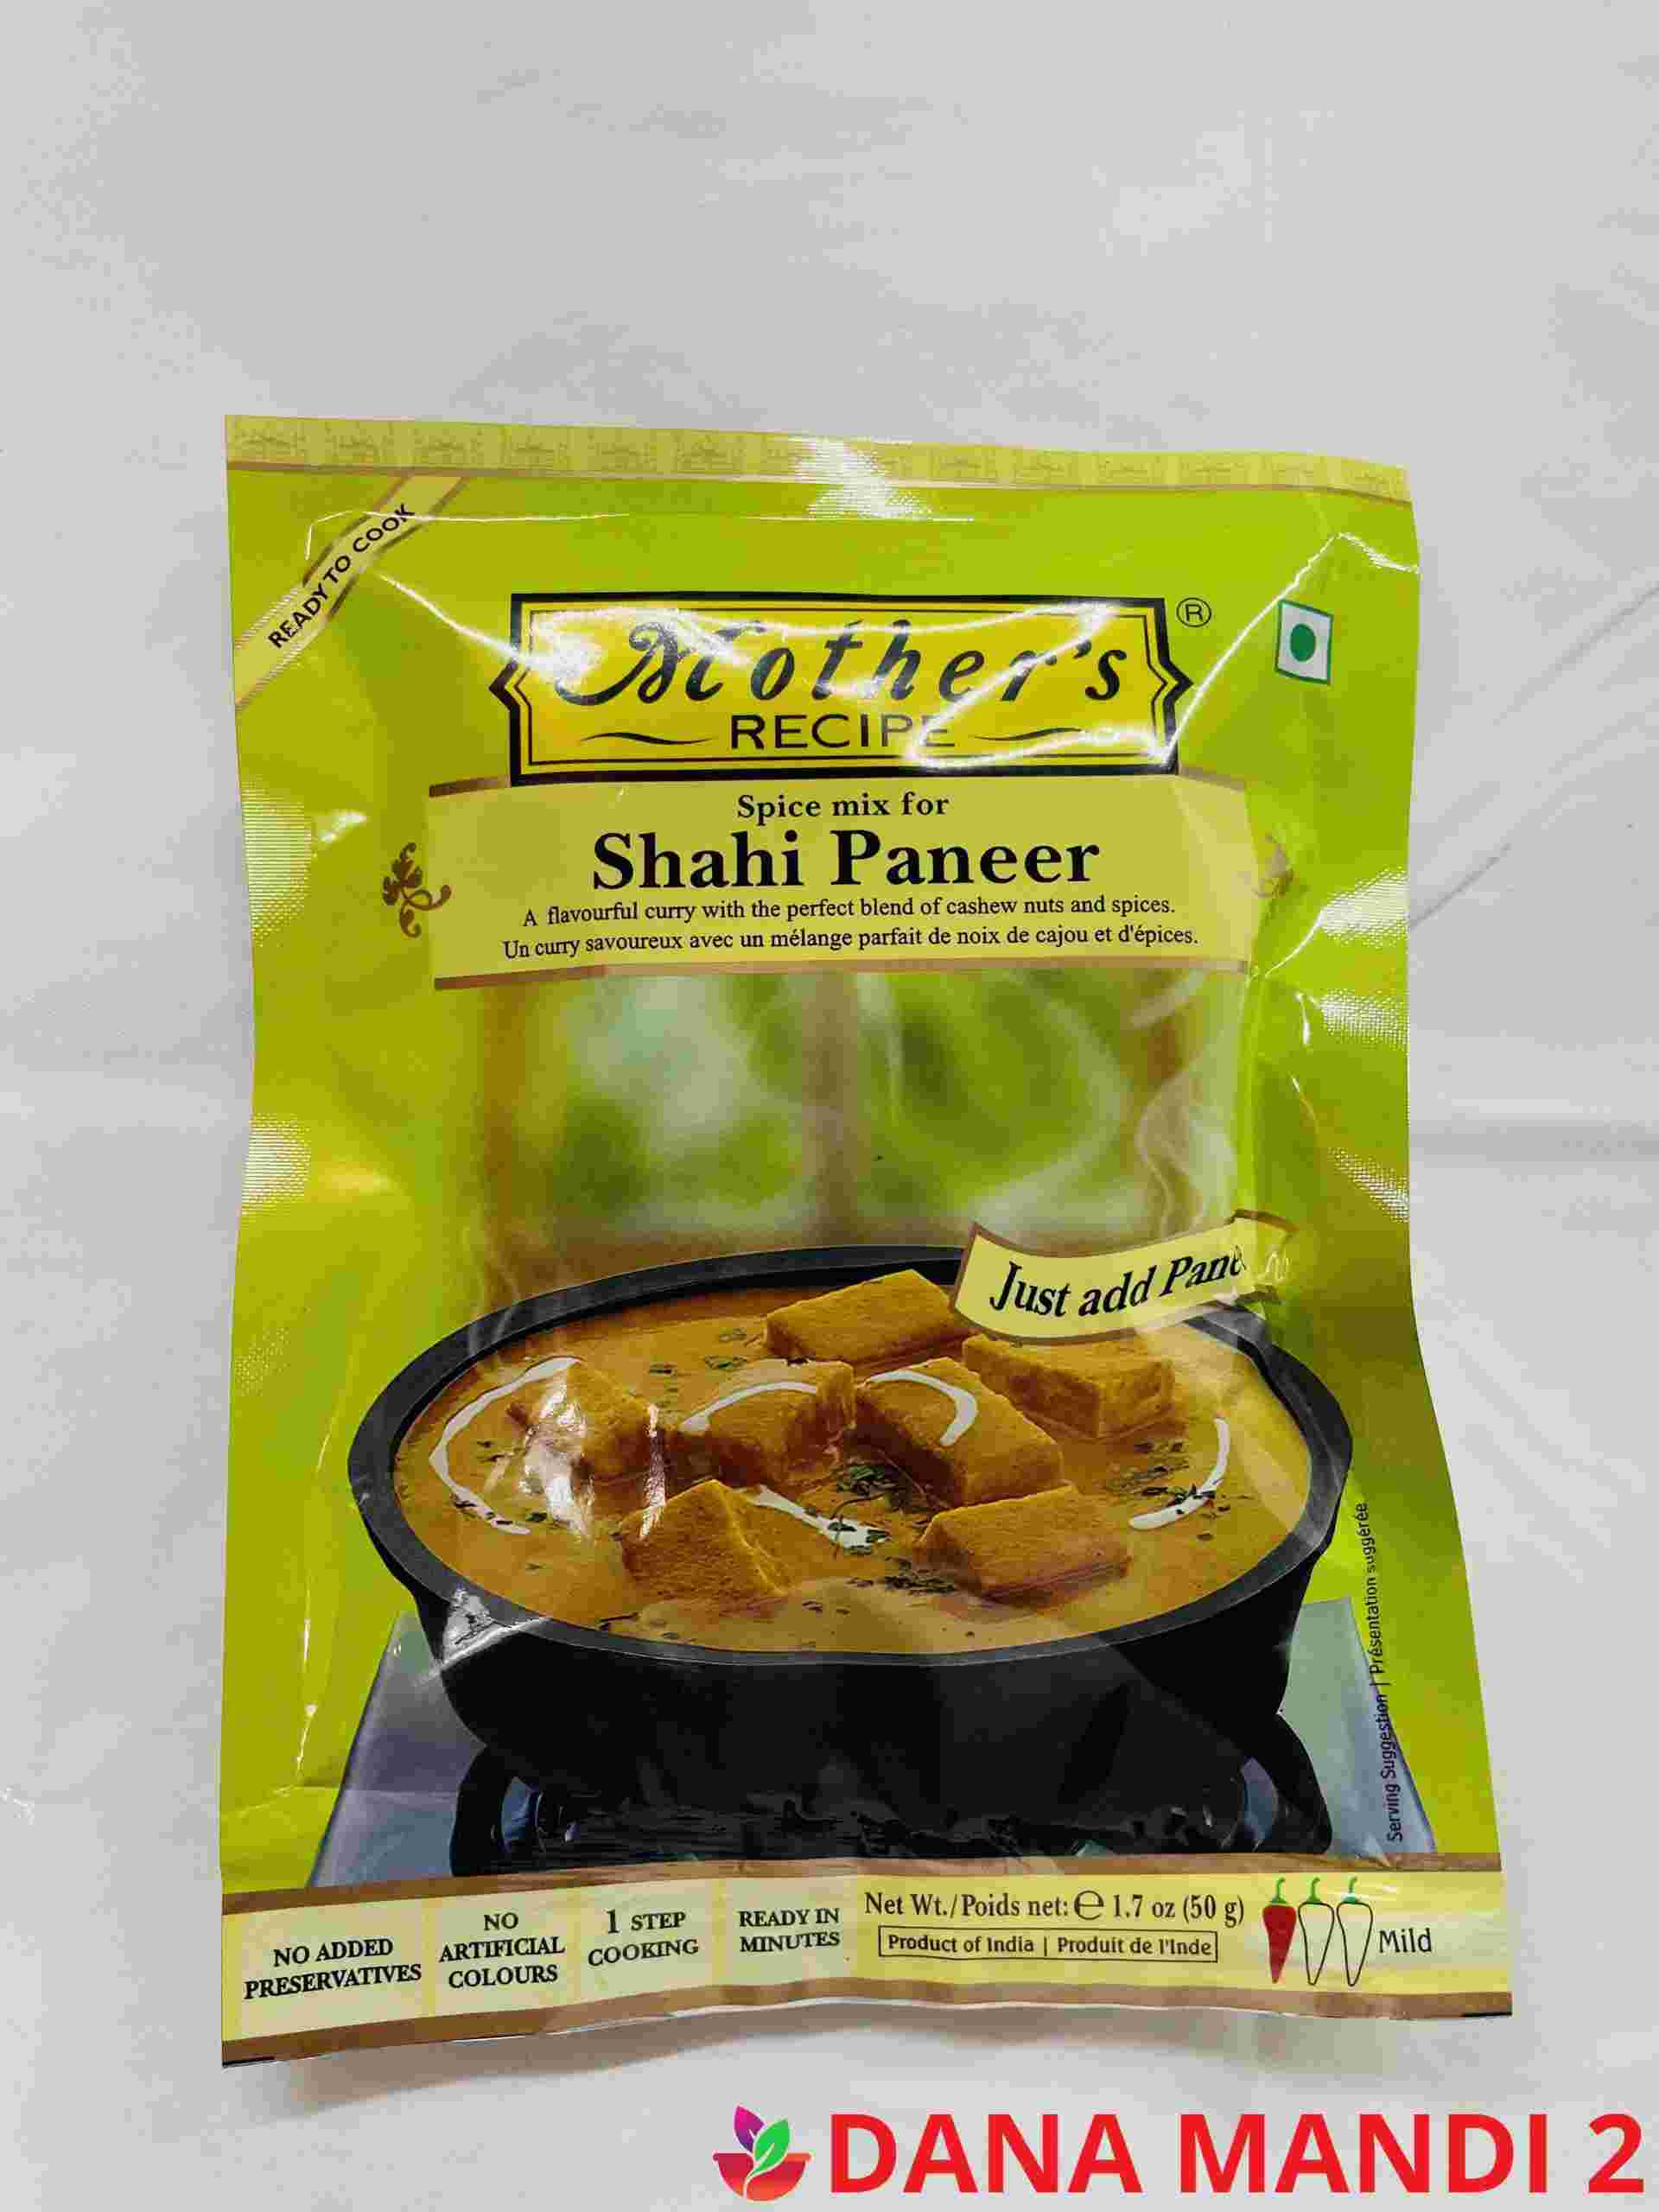 Mother's Spice Mix For Shahi Paneer